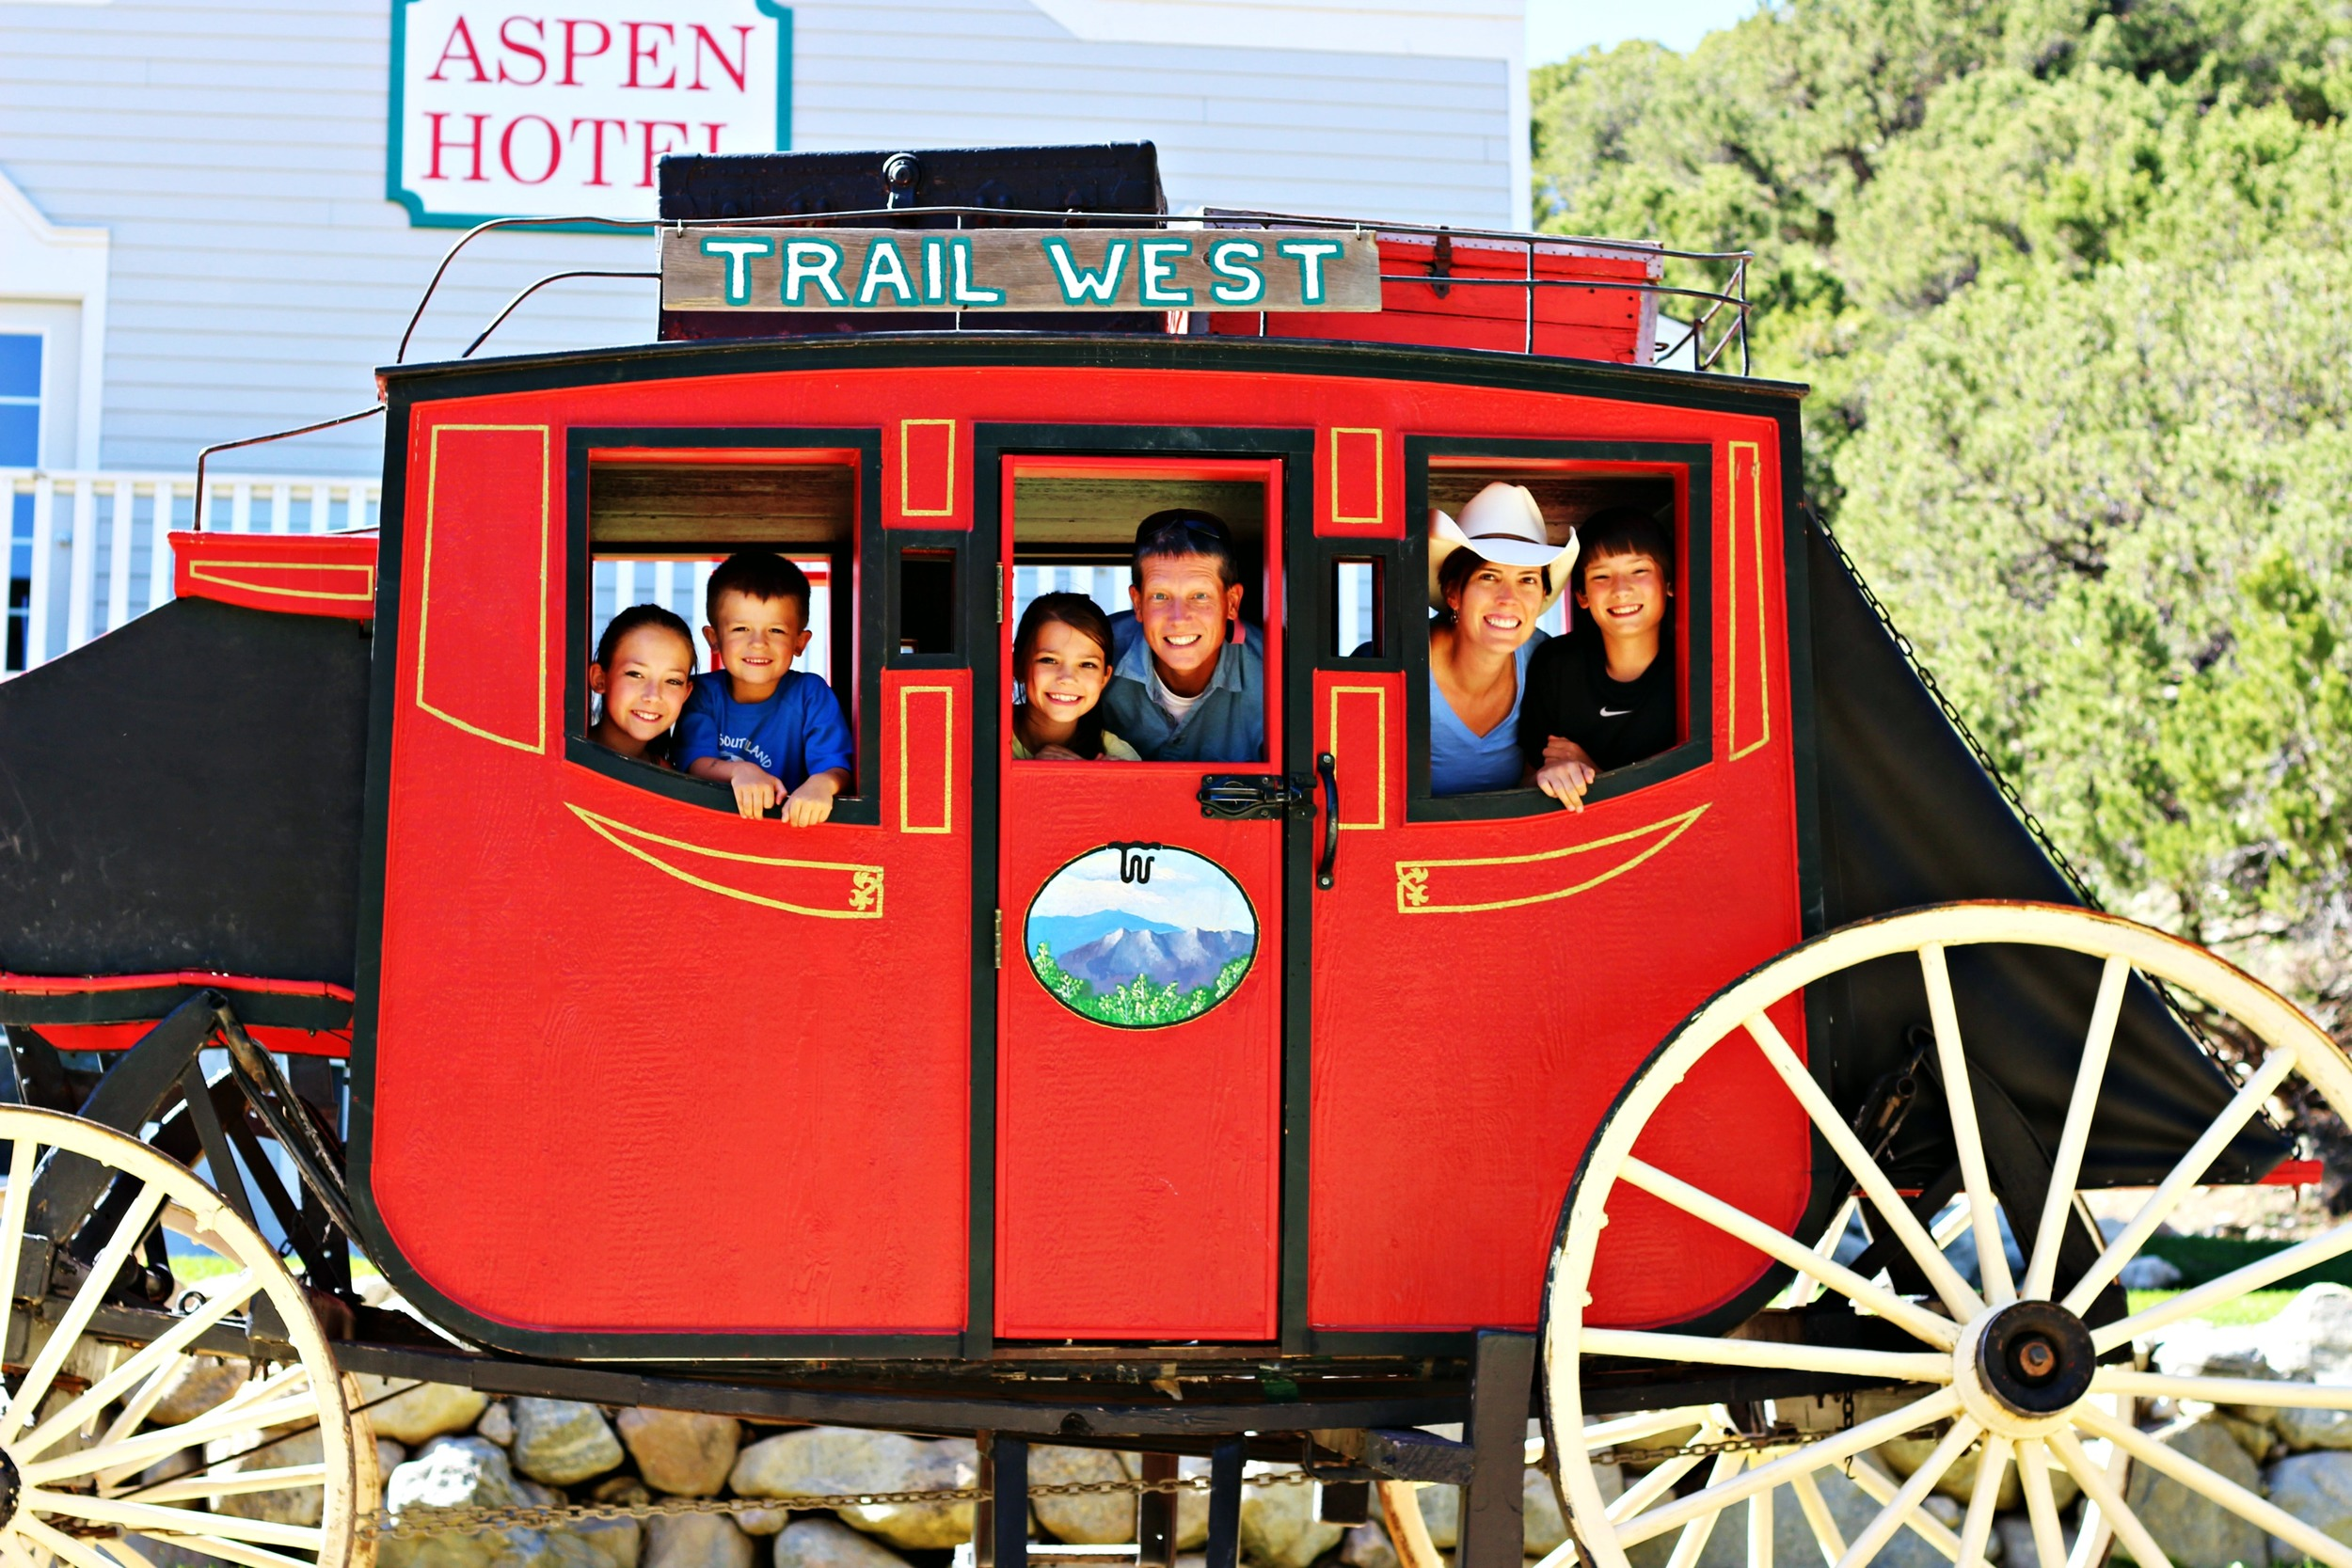 stage-coach-family-trail-west-lodge